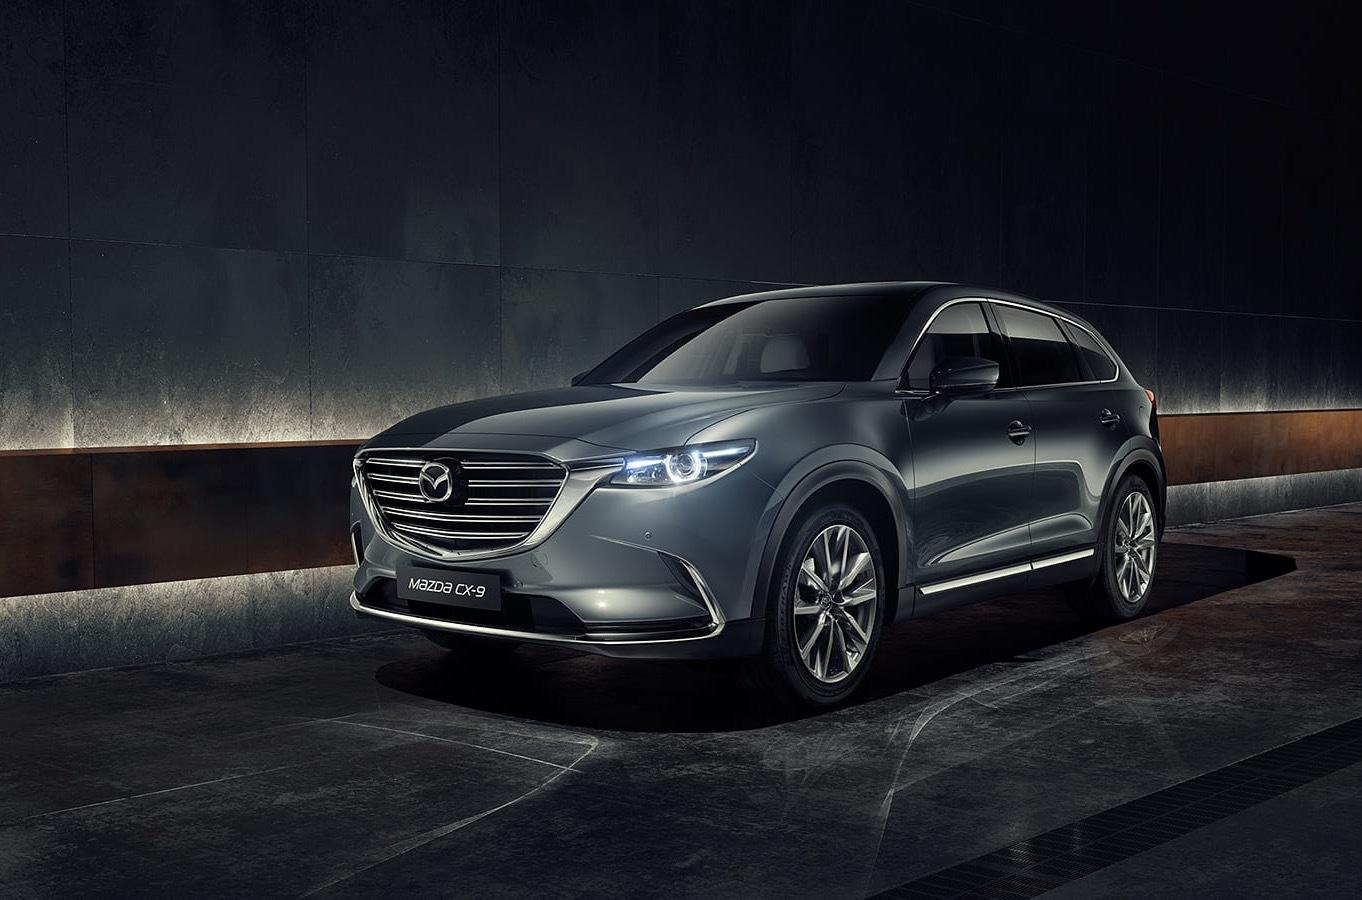 Continuing our overview of this year's LA Show, let us throw a glance at the 2020 Mazda CX-9 SUV that will soon reach the dealerships throughout the United States.